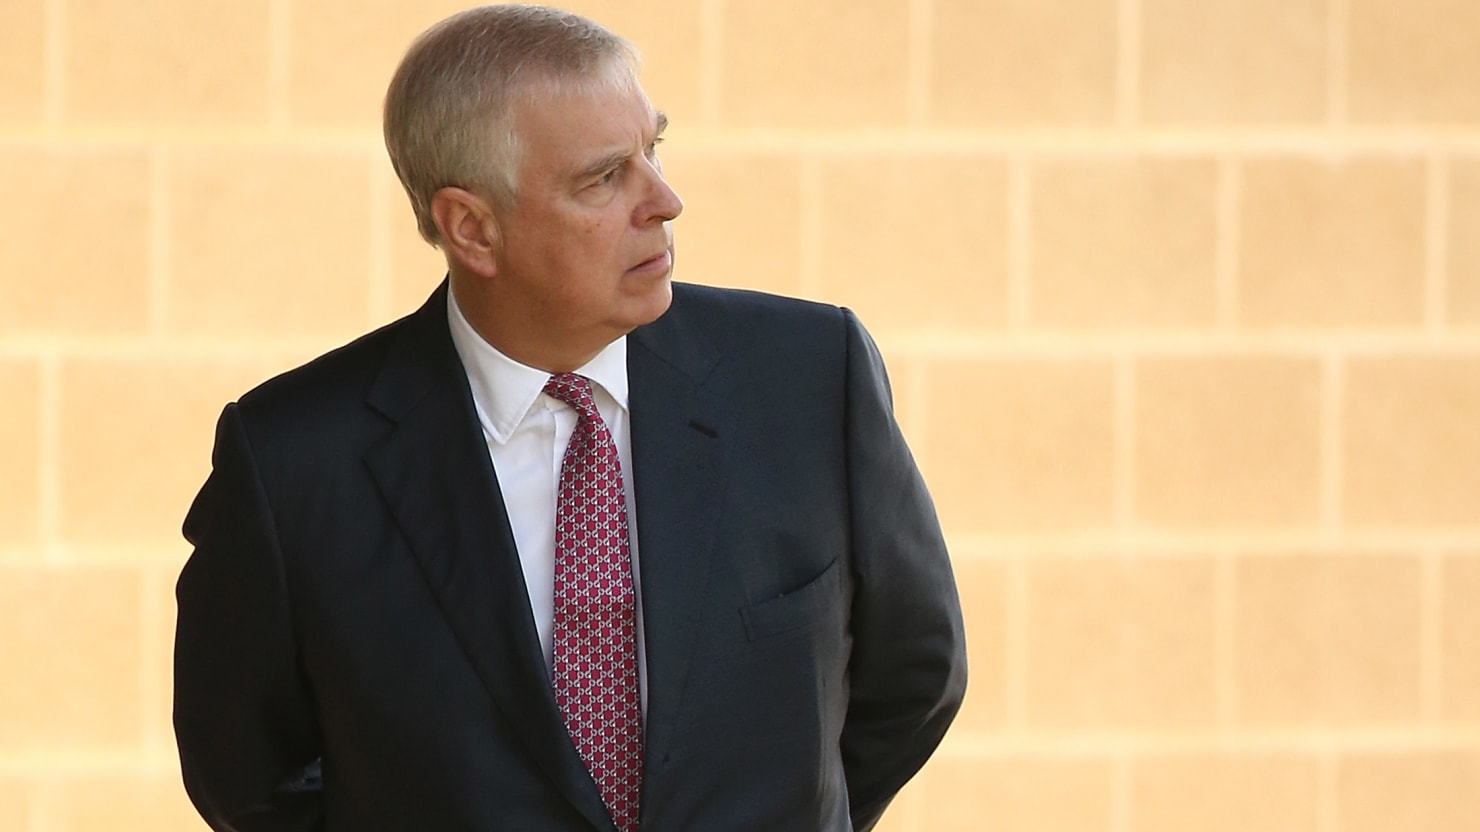 Second Jeffrey Epstein Victim Claims Prince Andrew Had Sex With Her